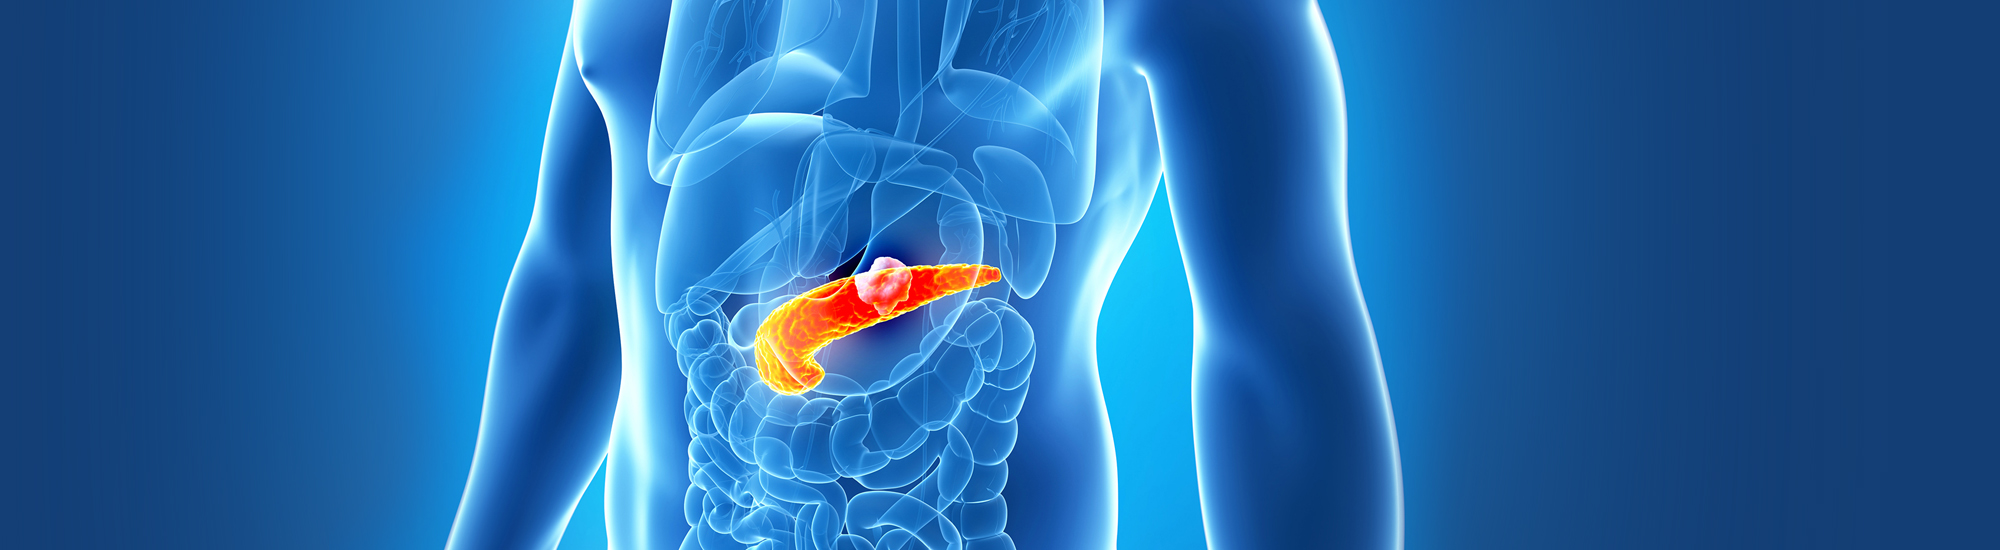 Ayurvedic treatment for Pancreatitis